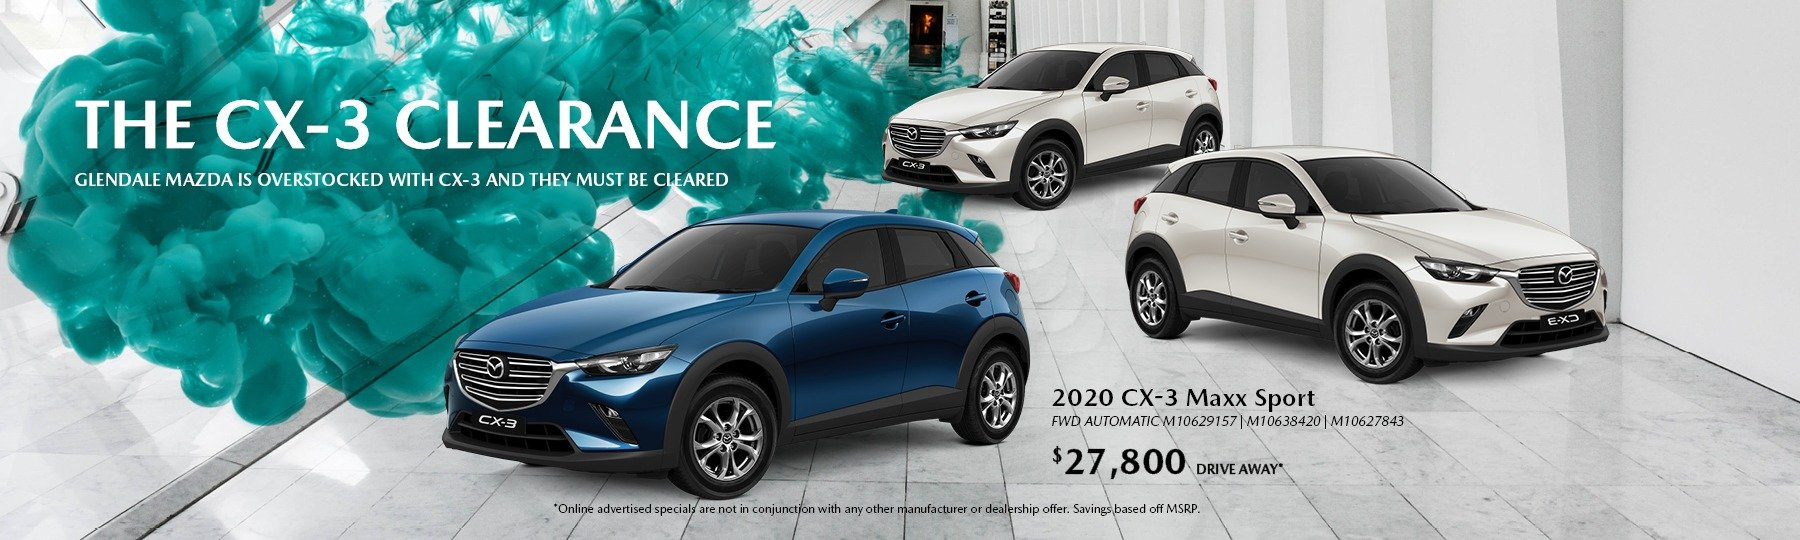 The CX-3 Clearance